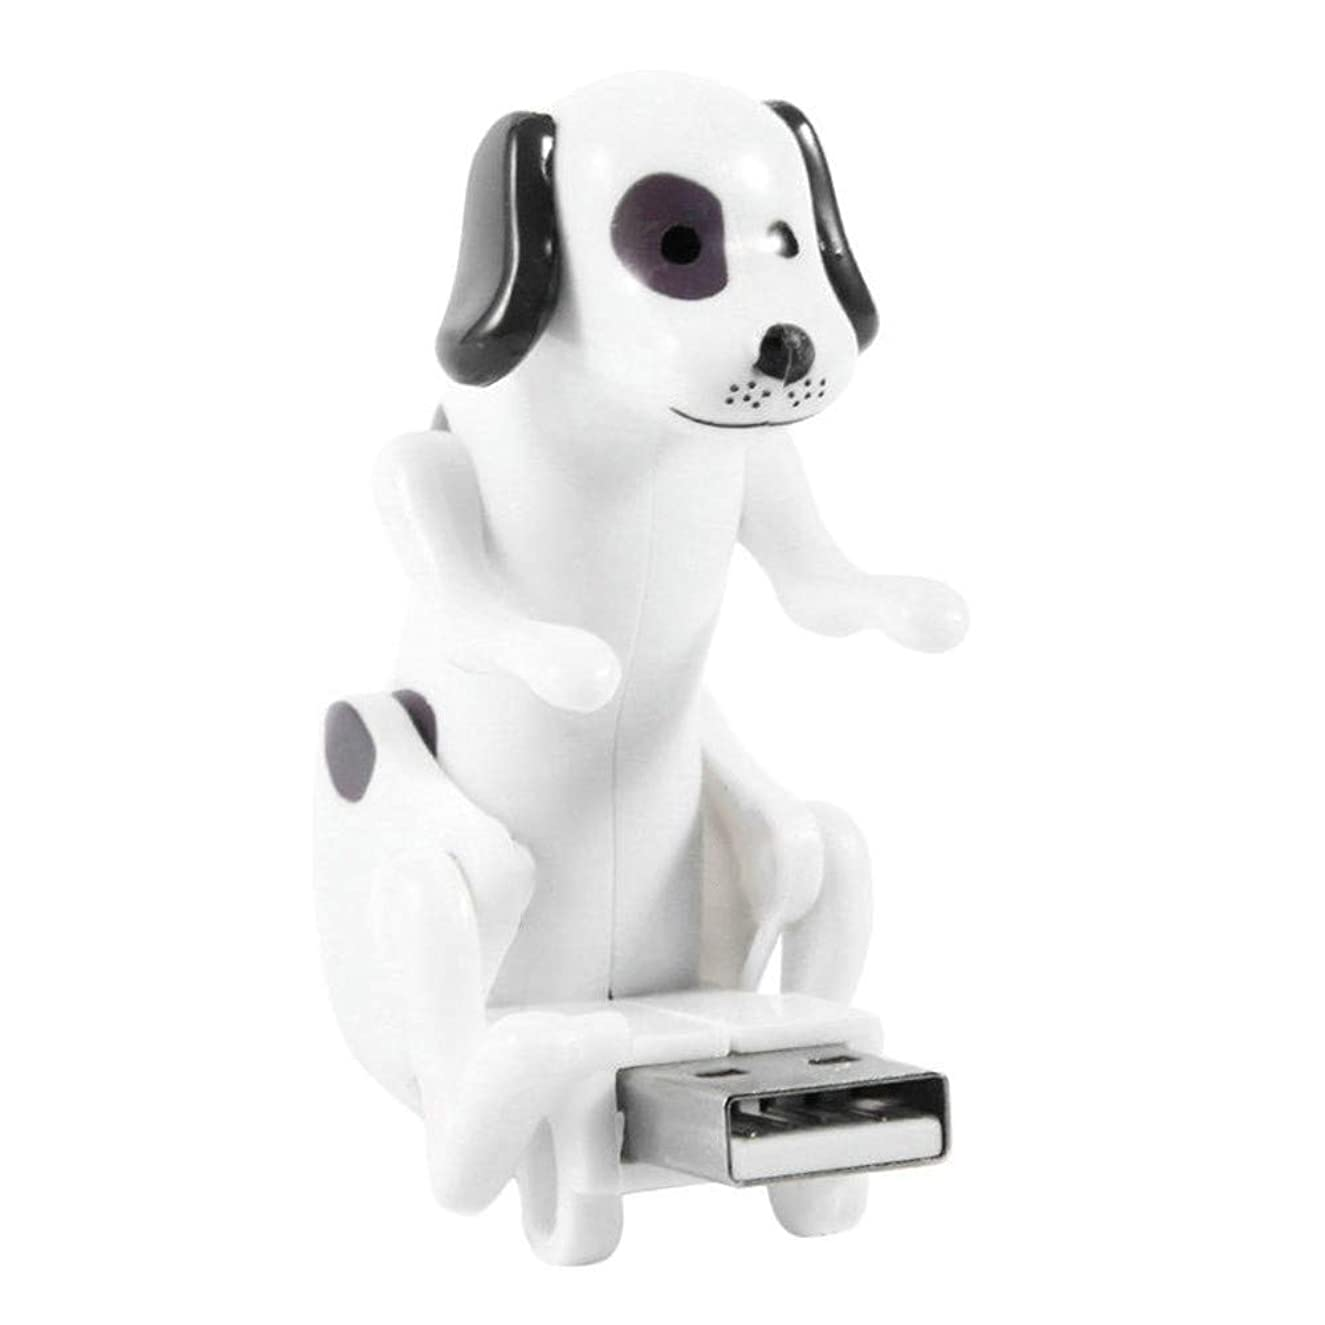 Blackcat Mini Funny Cute Dog USB Flash Drives for PC Laptop Adults Stress Relief Toy Gadgets (White)